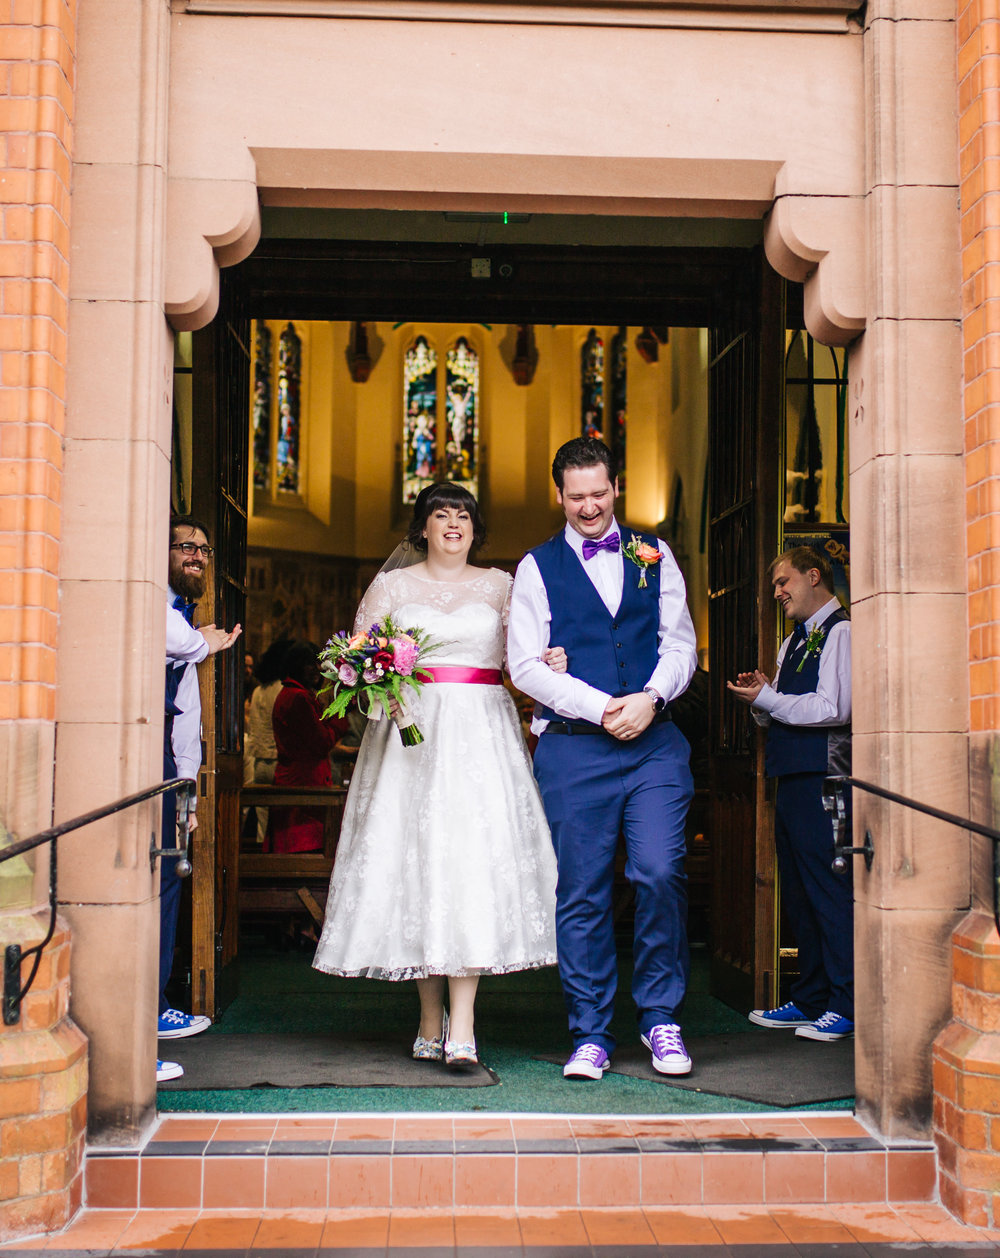 Bride and groom, Quirky wedding at Wellbeing Farm.